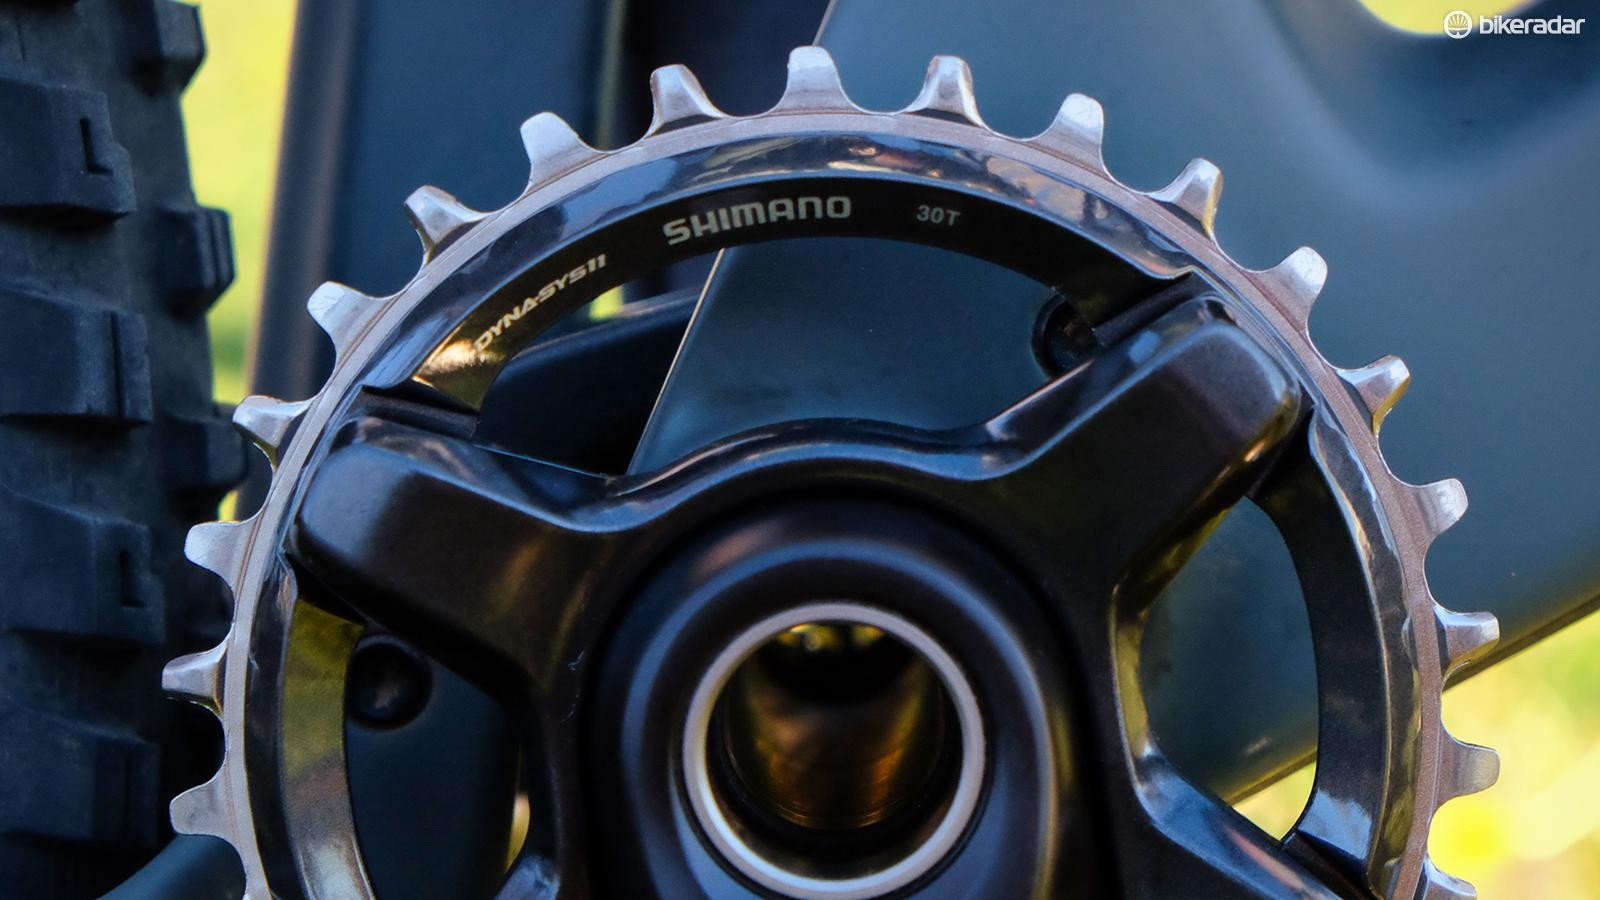 Shimano XT M8000 groupset review - BikeRadar